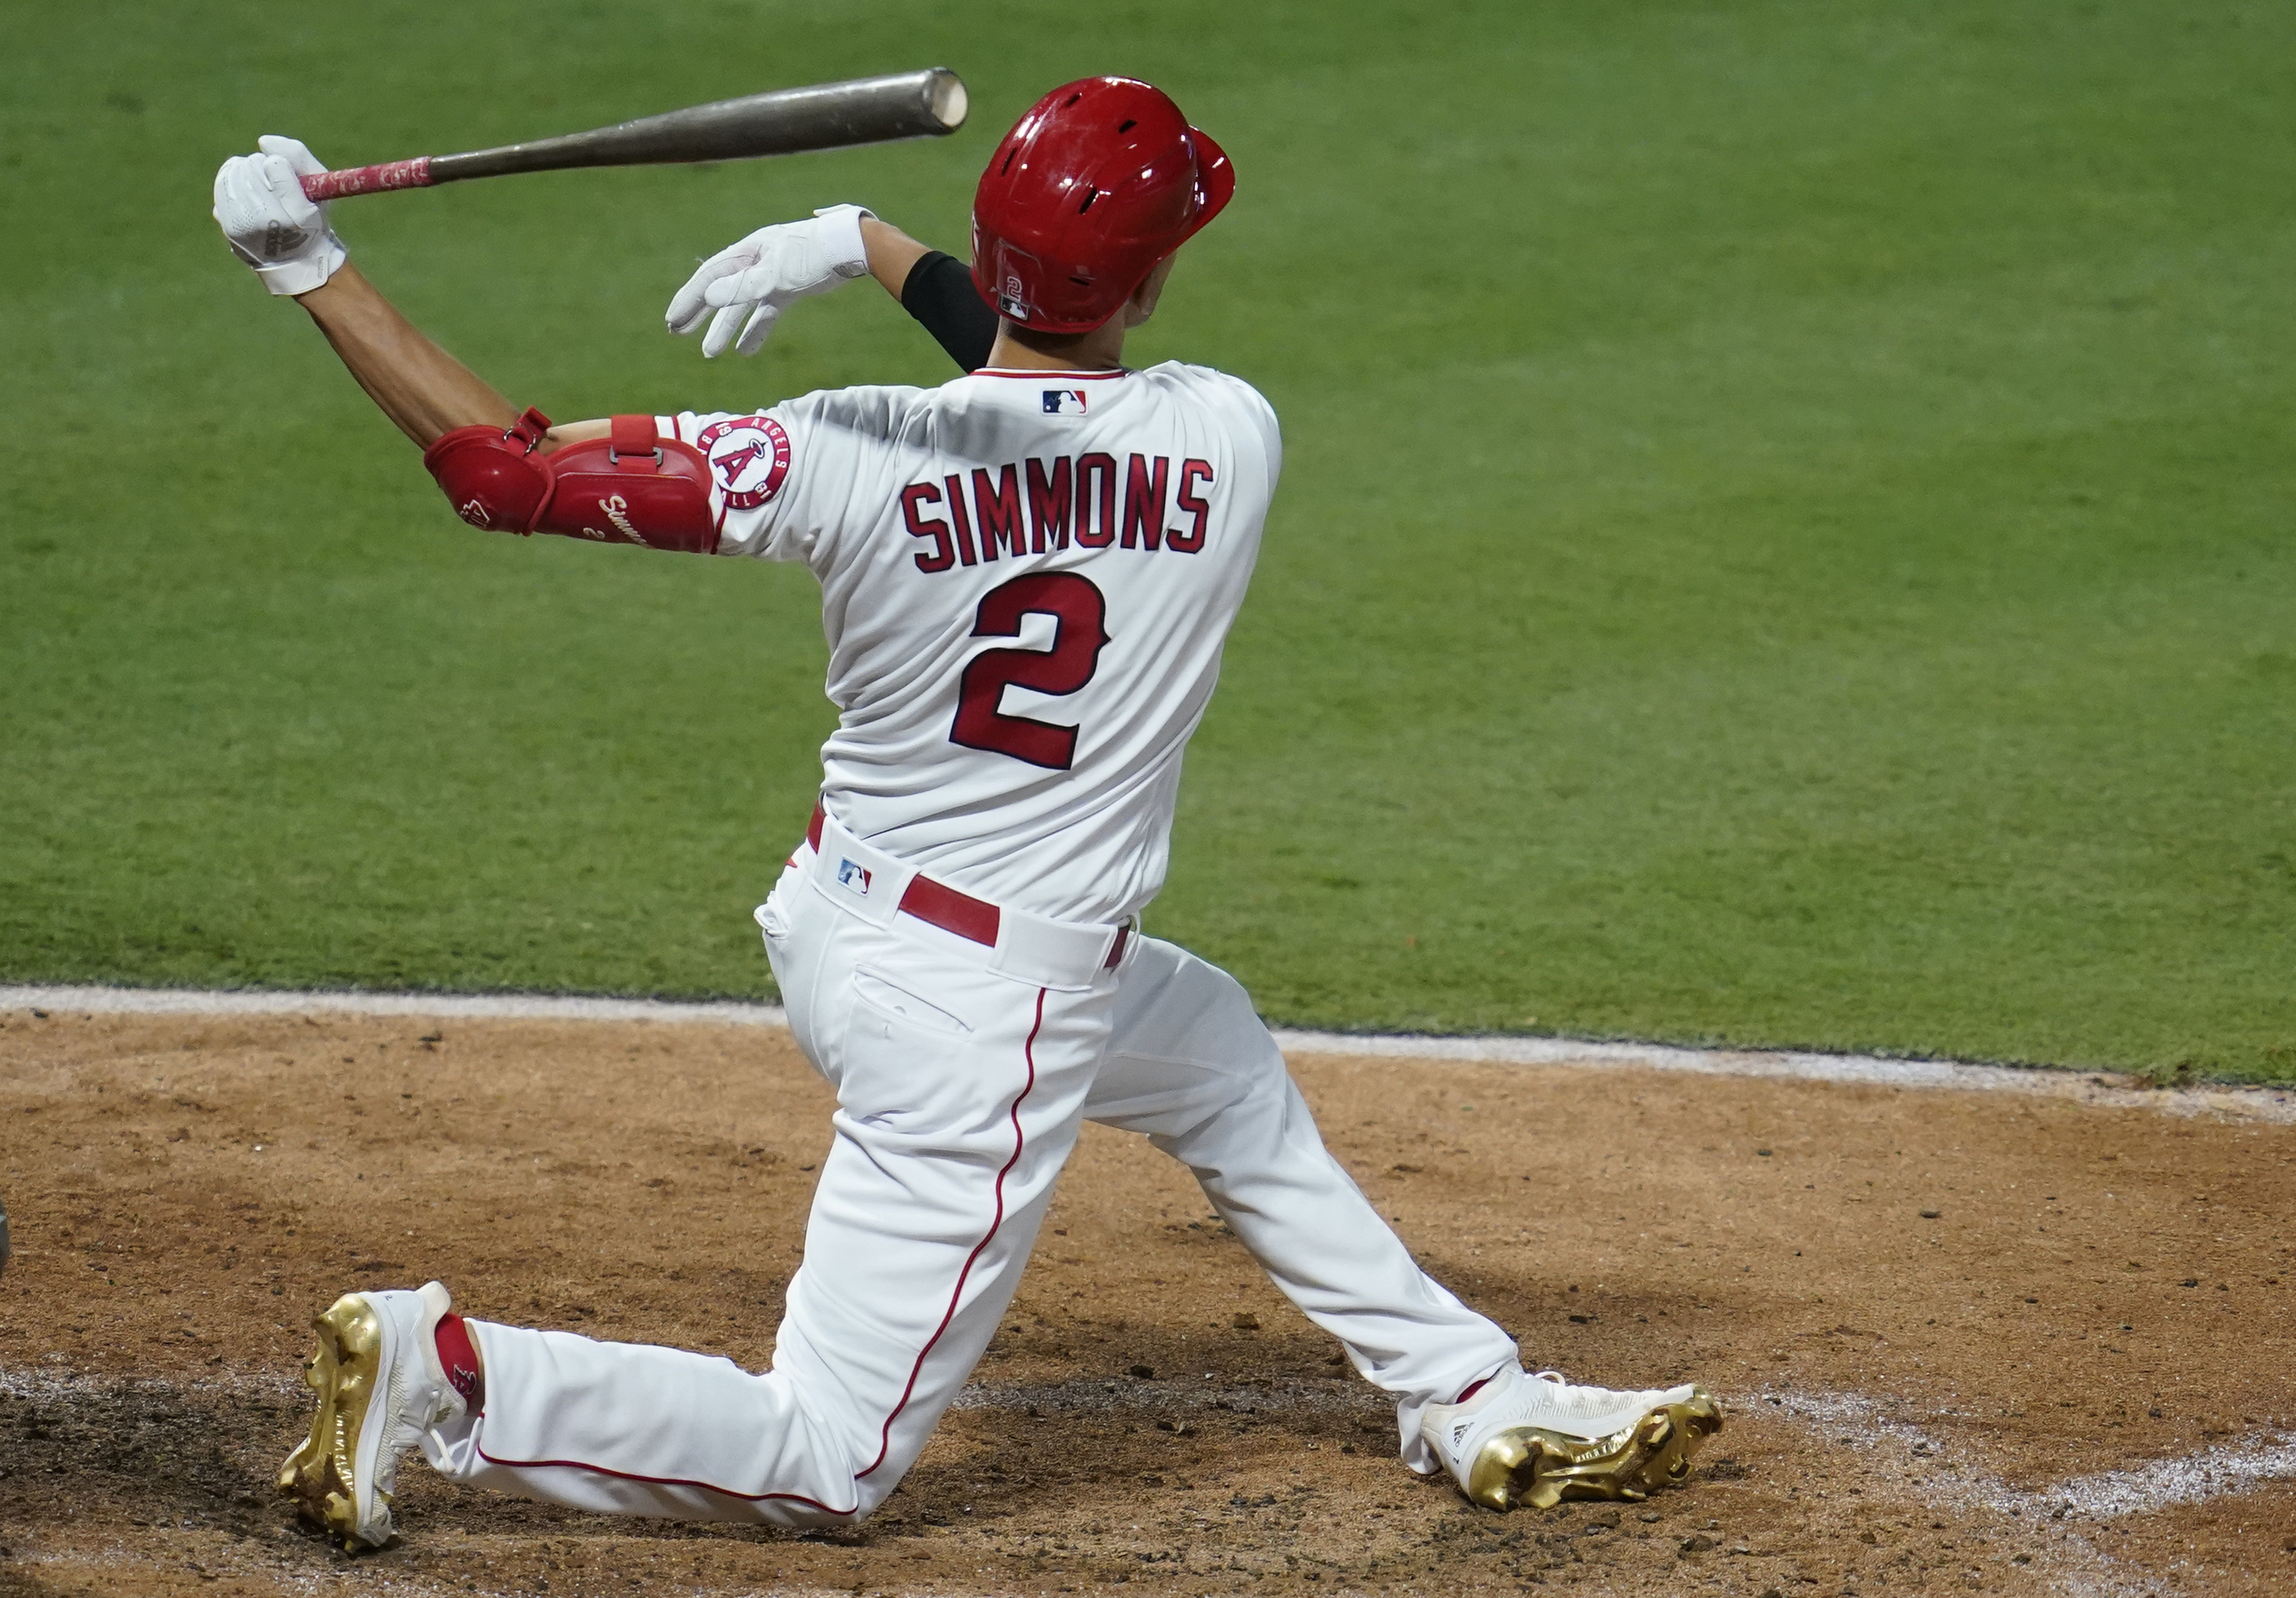 Andrelton Simmons #2 of the Los Angeles Angels gets a hit against the Arizona Diamondbacks at Angel Stadium of Anaheim on September 16, 2020 in Anaheim, California.